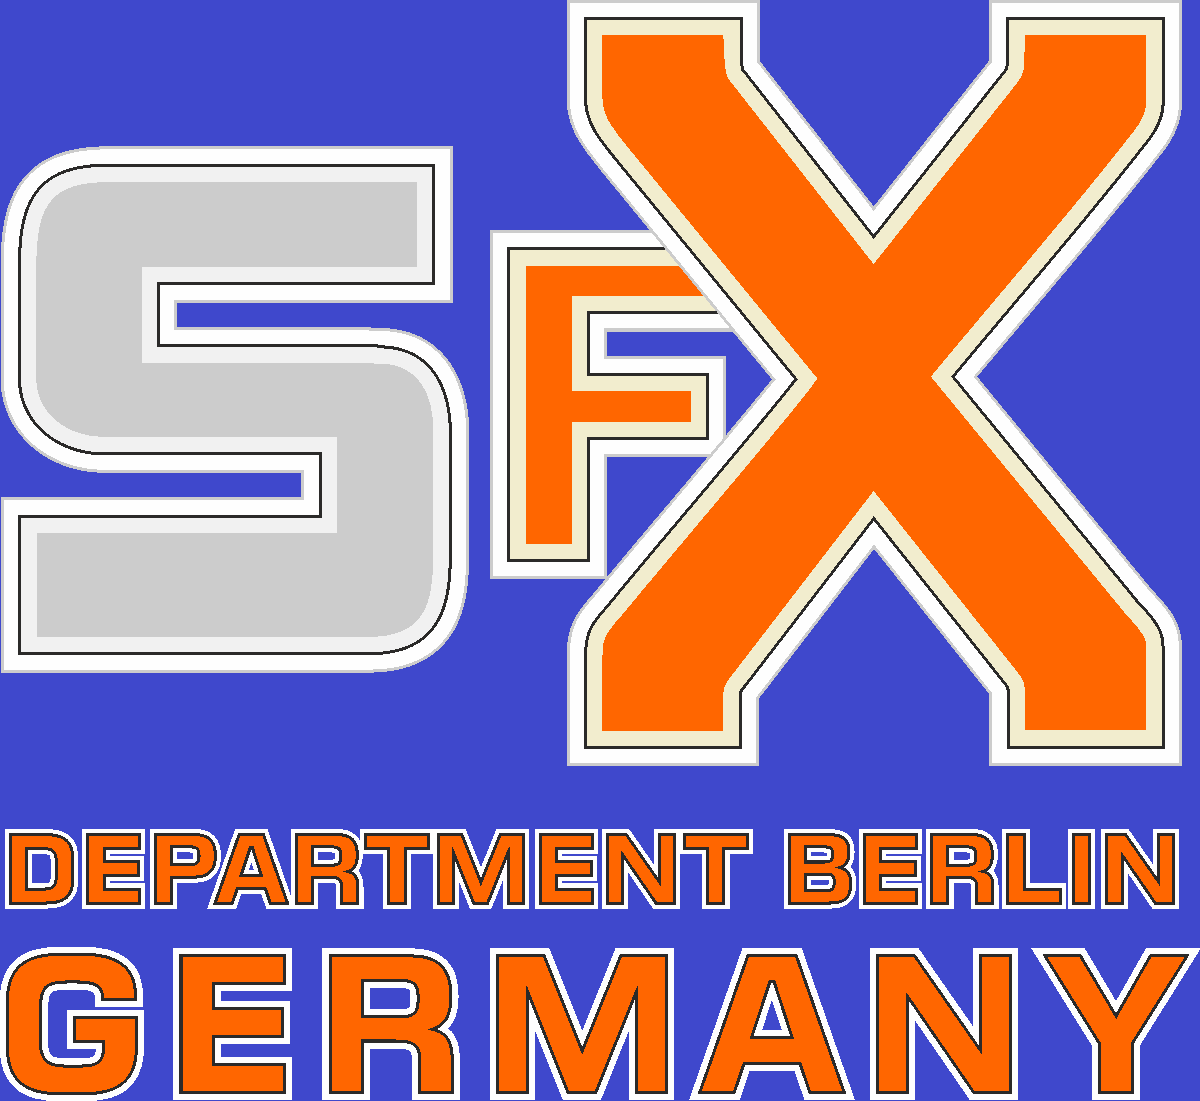 SFX Department Berlin